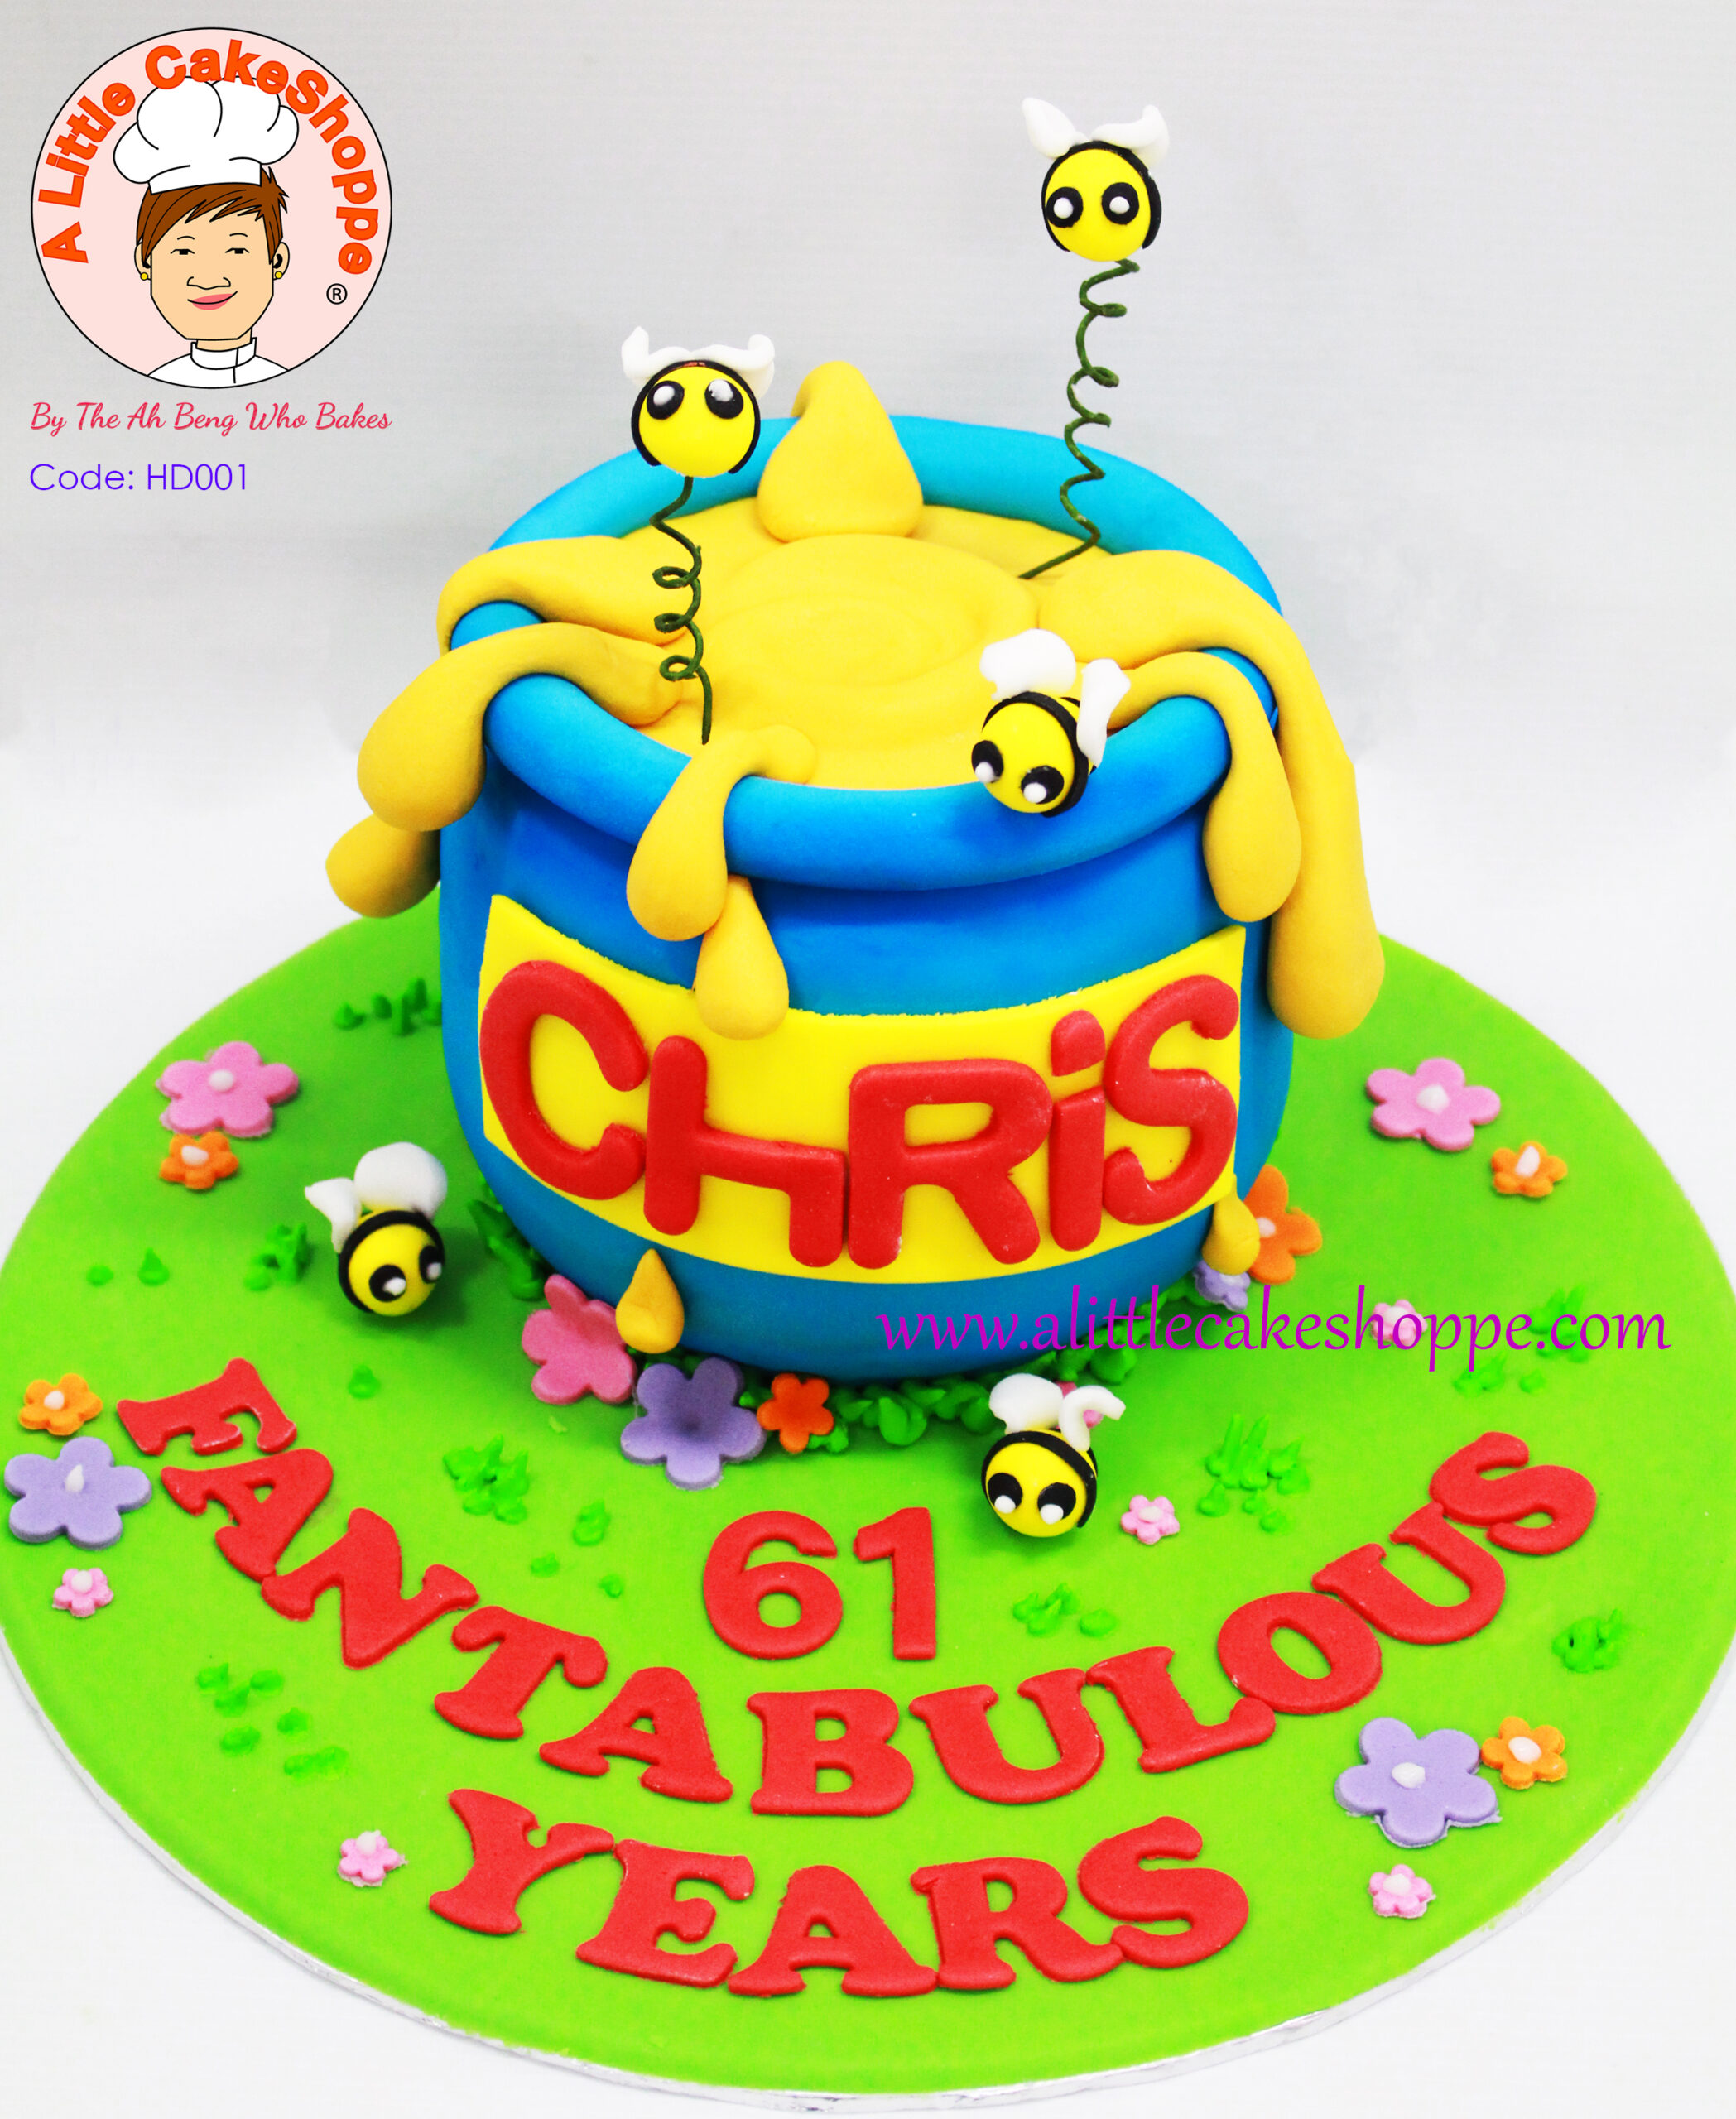 Best Customised Cake Shop Singapore custom cake 2D 3D birthday cake cupcakes desserts wedding corporate events anniversary 1st birthday 21st birthday fondant fresh cream buttercream cakes alittlecakeshoppe a little cake shoppe compliments review singapore bakers SG cake shop cakeshop ah beng who bakes winnie the pooh honey pot and bees